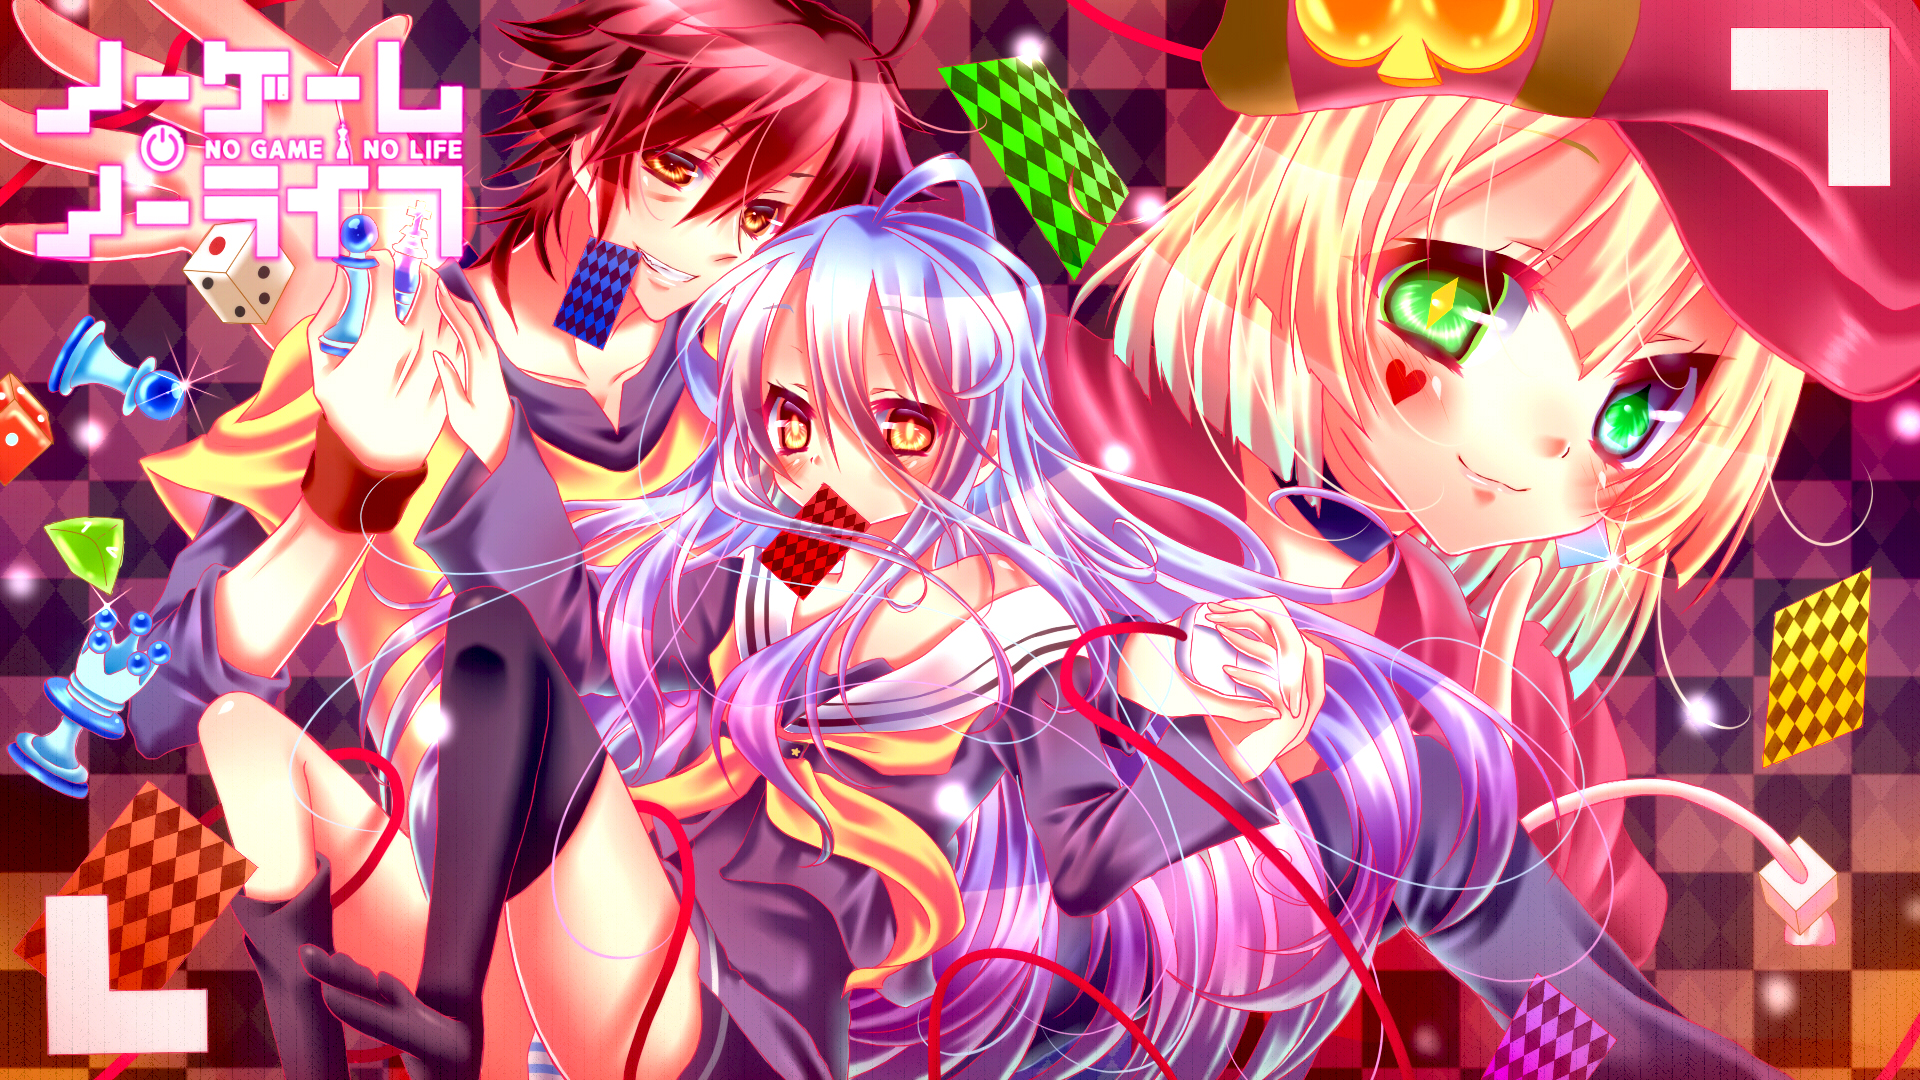 No Game No Life Hd Wallpaper 1708806 Zerochan Anime Image Board